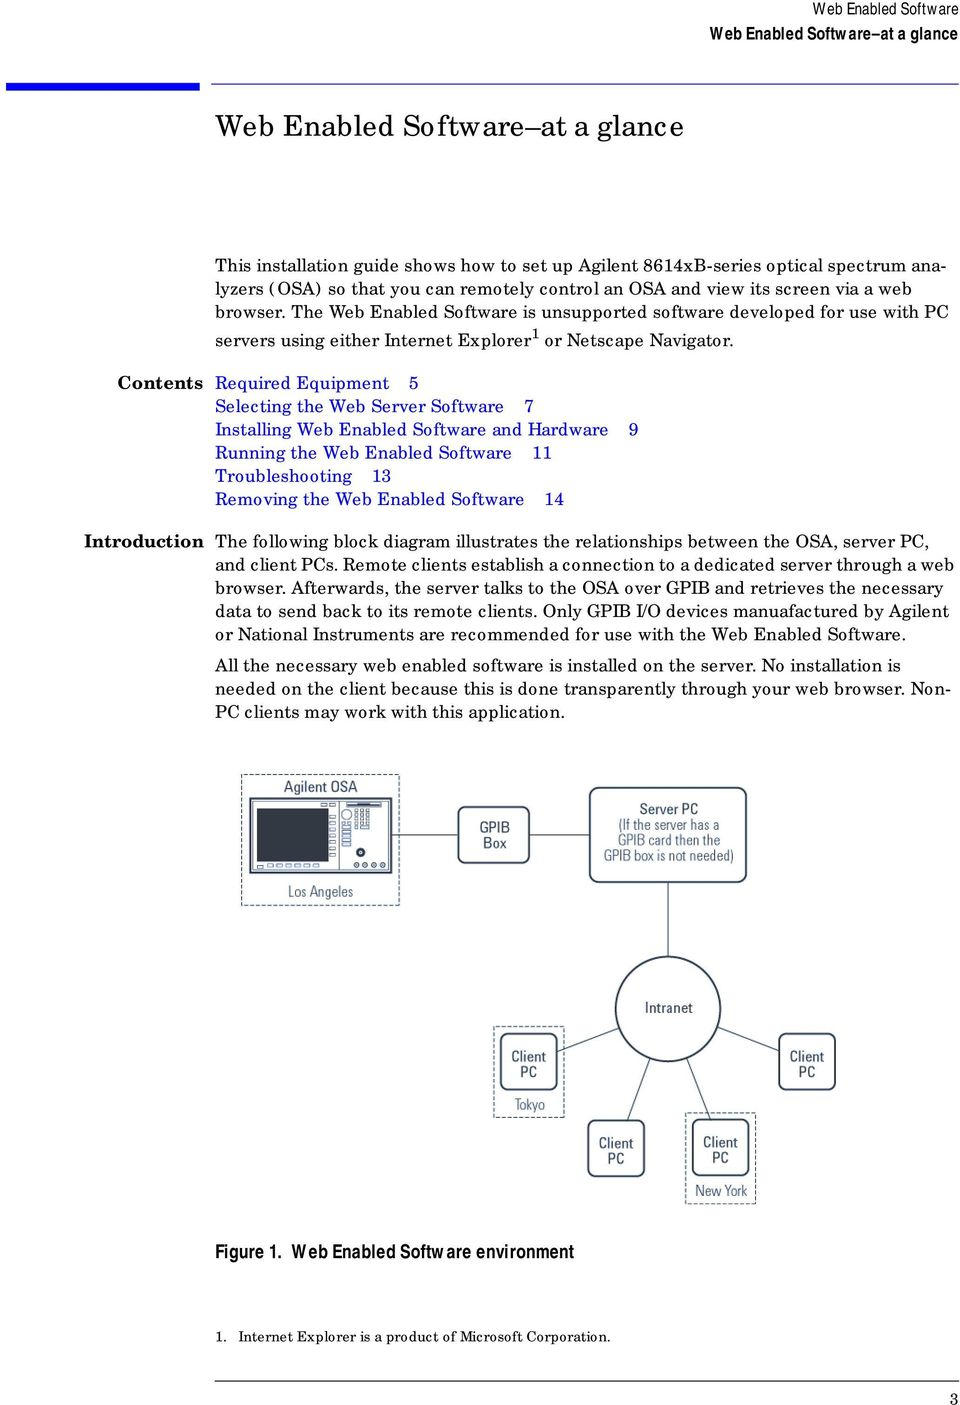 Web Enabled Software For 8614xb Series Optical Spectrum Analyzers Intranet Diagram Apache Iis And Pws Contents Required Equipment 5 Selecting The Server 7 Installing Hardware